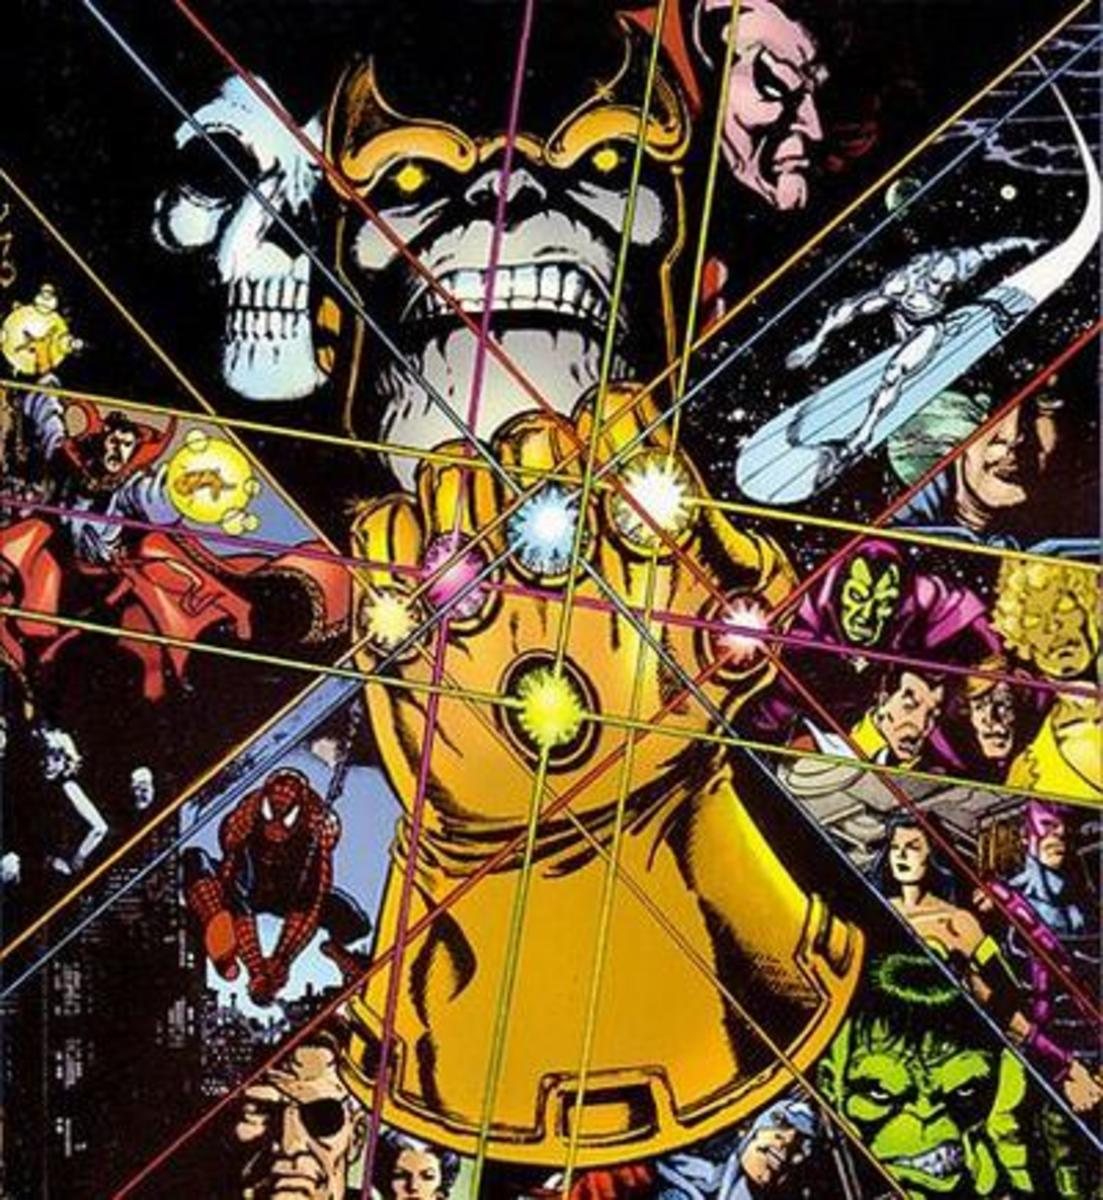 Thanos Returns - The Infinity Gauntlet